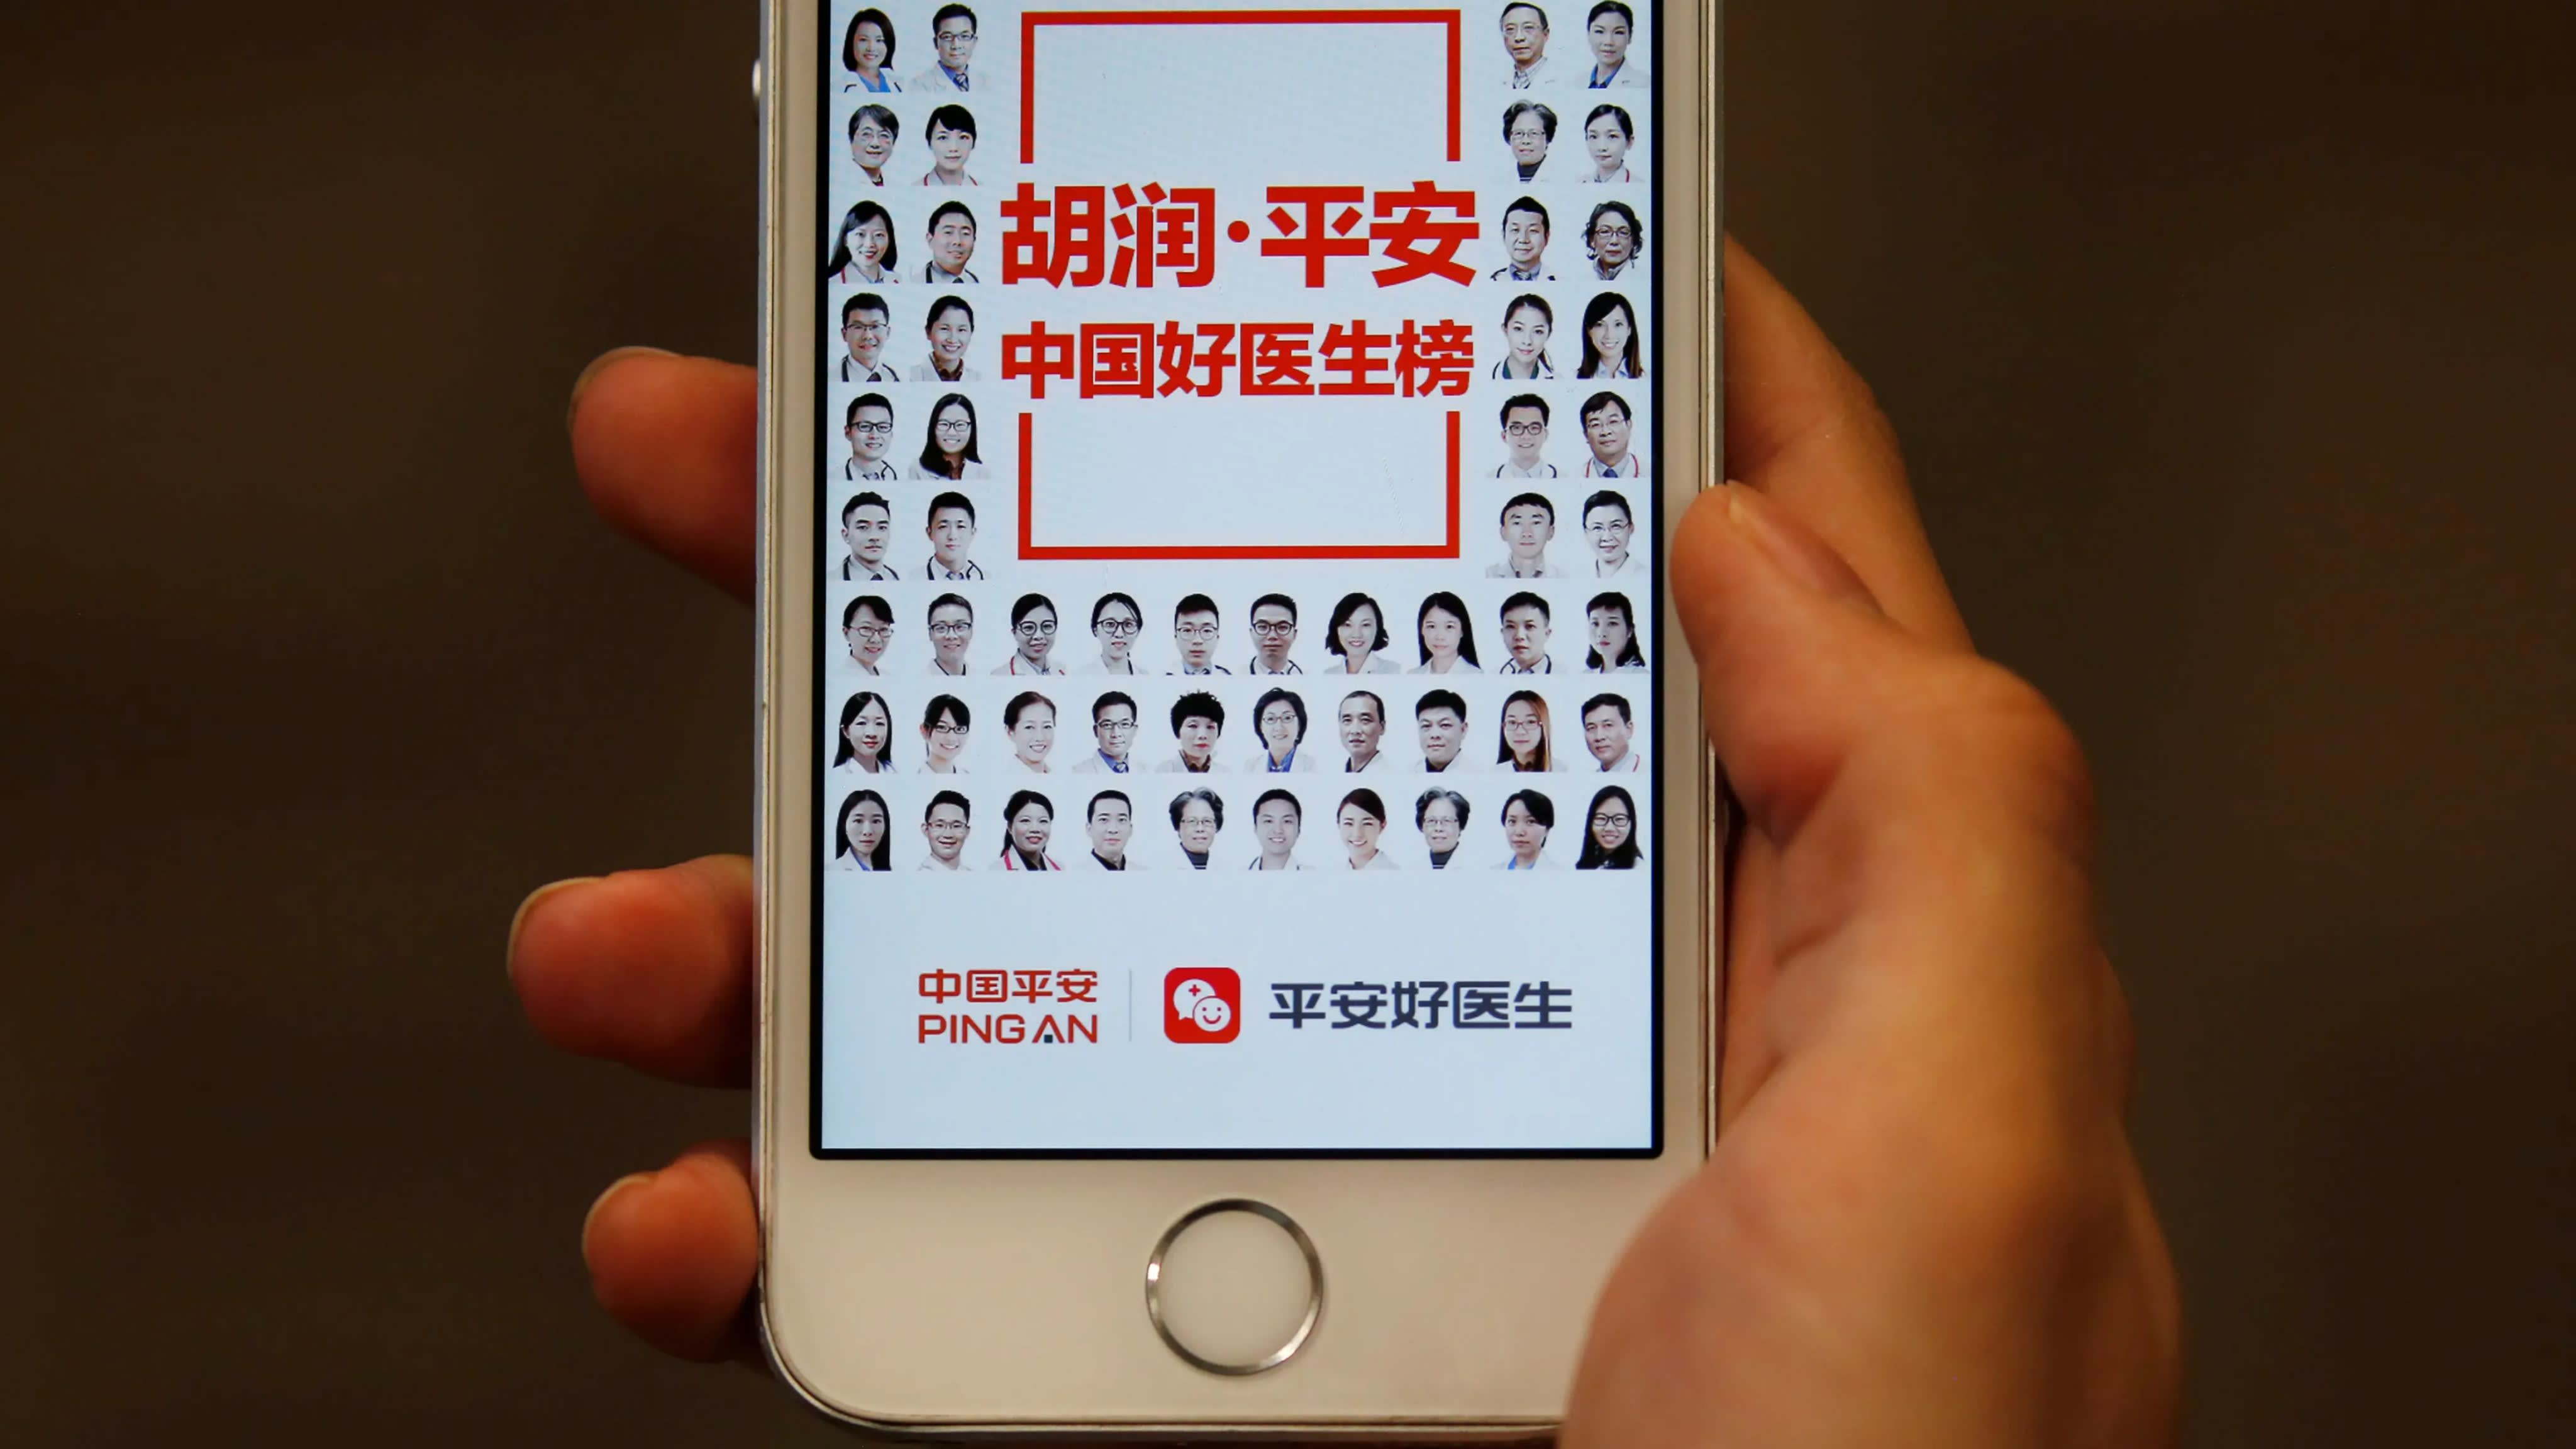 China's Ping An Insurance finds success with focus on tech - Nikkei